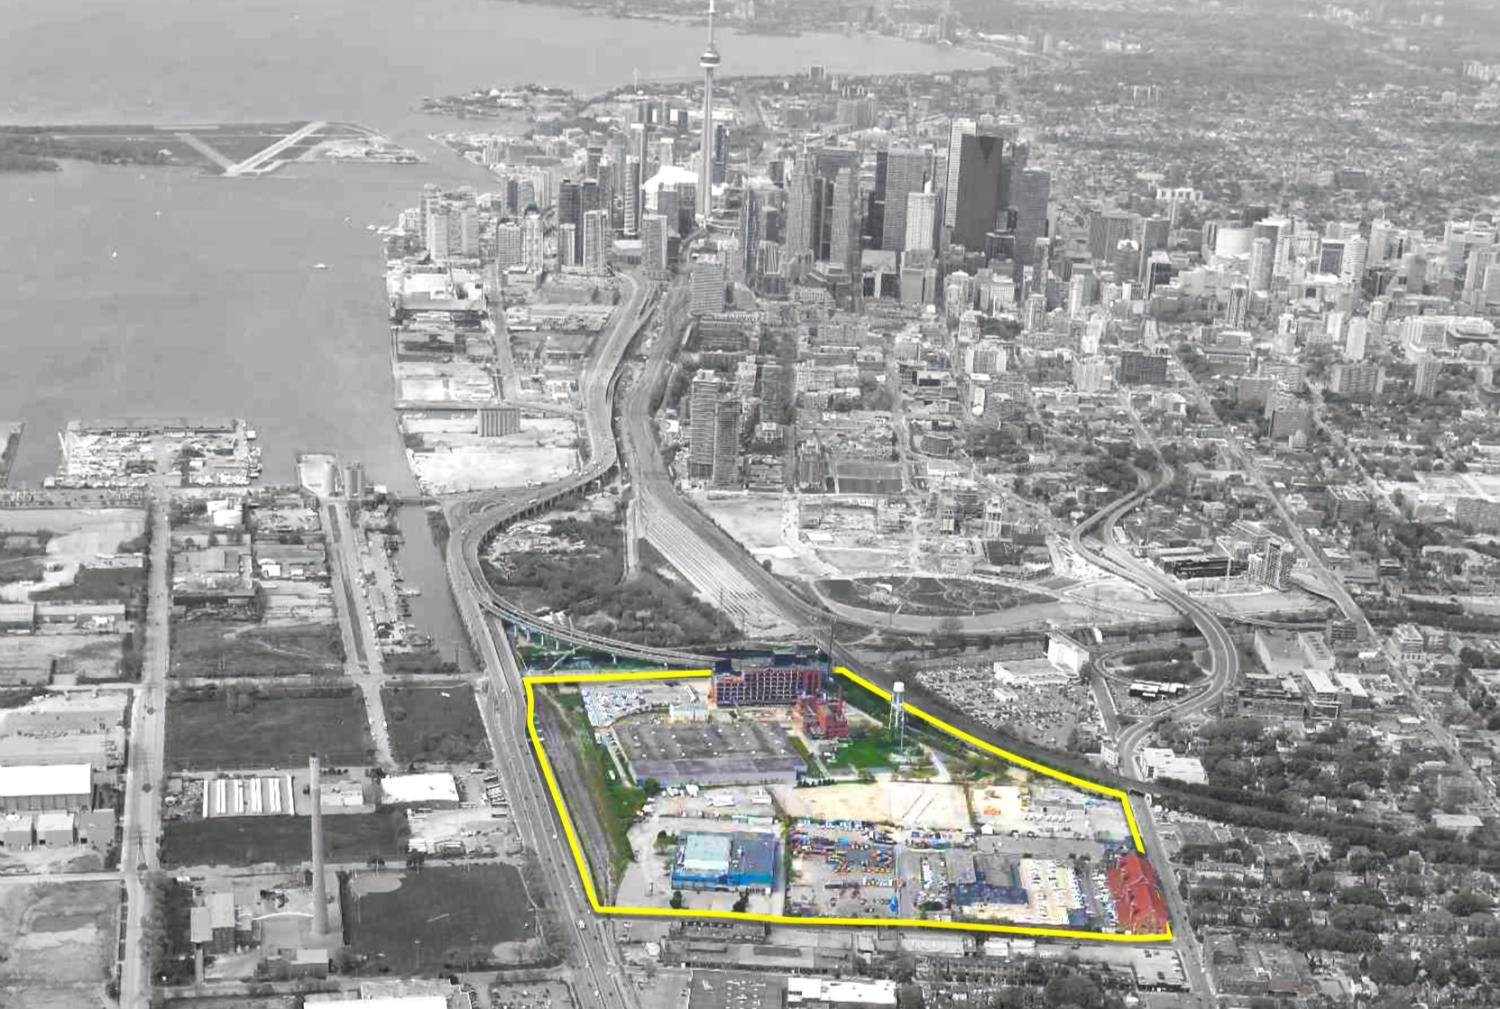 Outline of Unilever Precinct on aerial image, looking west toward downtown.